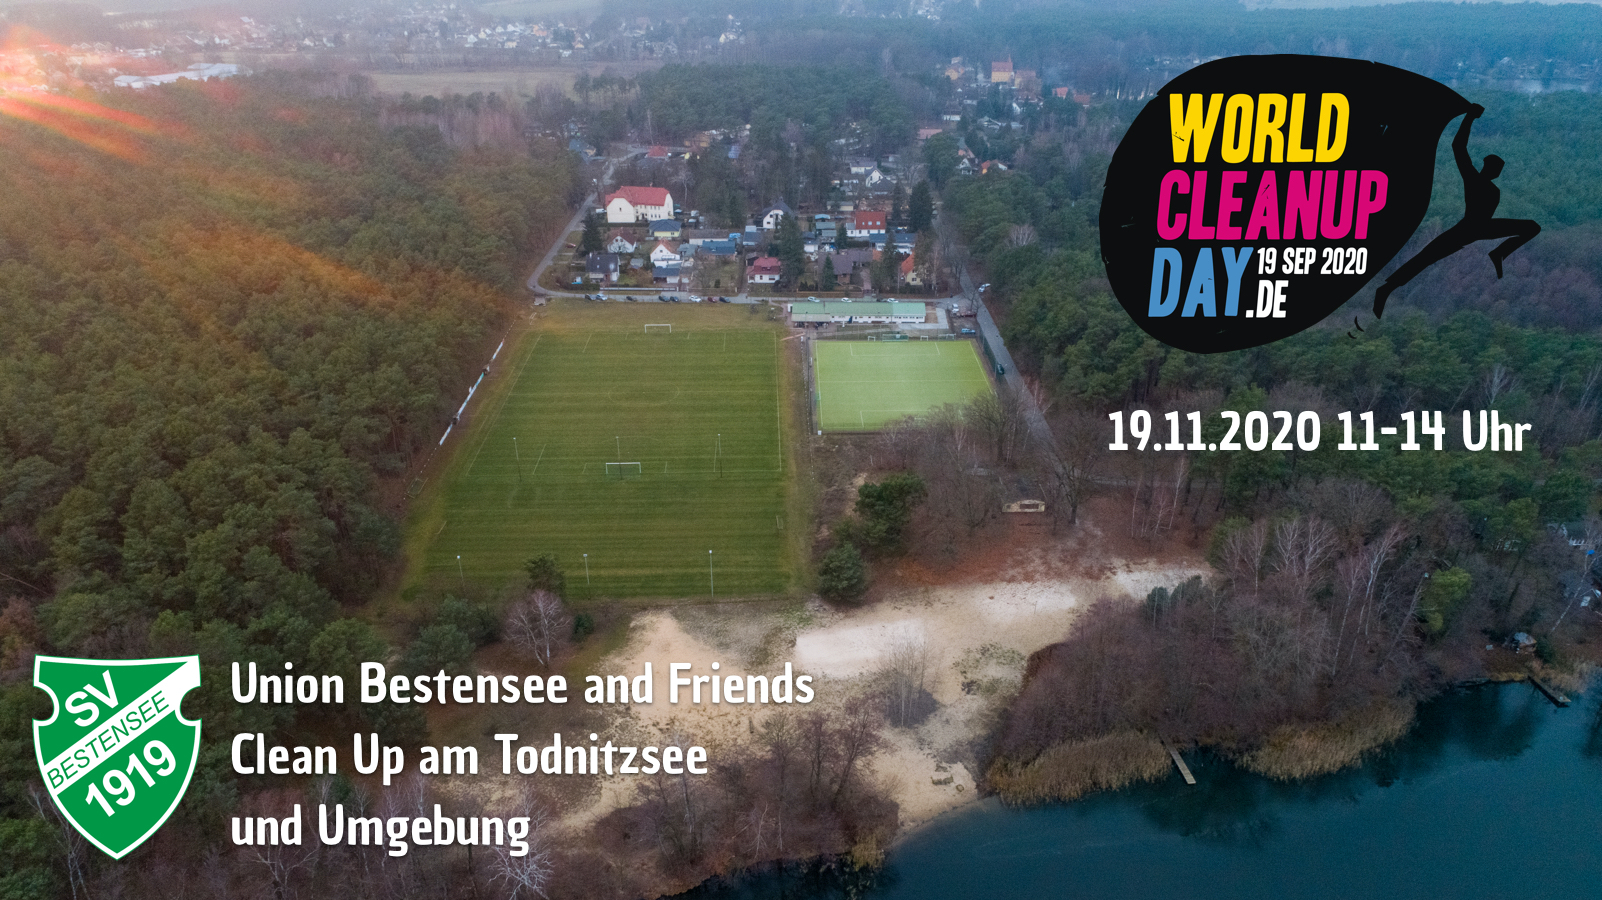 Union Bestensee and Friends Cleanup am Todnitzsee (Brandenburg)